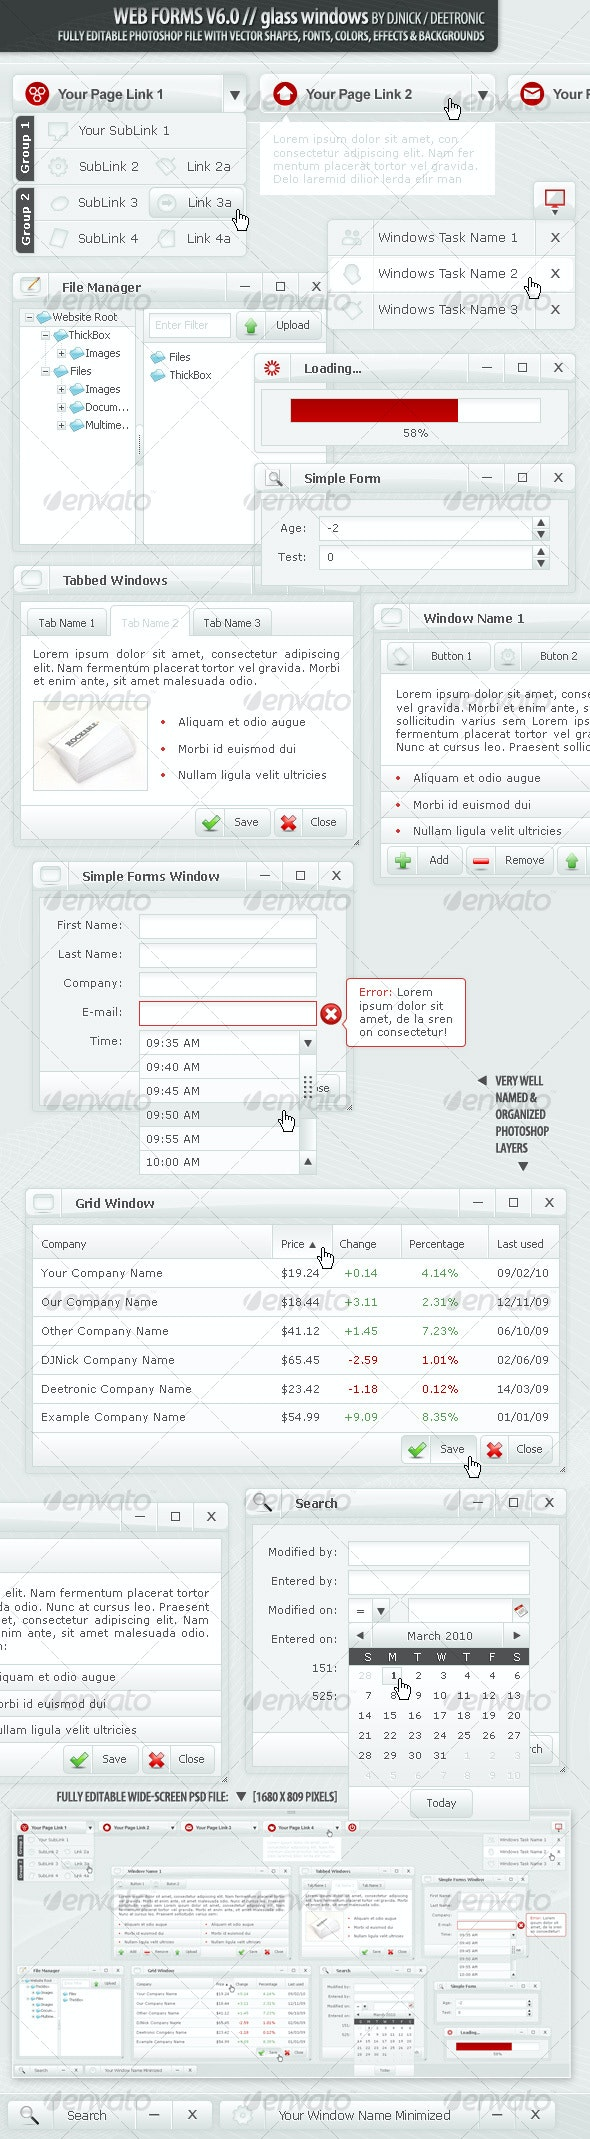 Web Forms and Windows - Glass Windows Style PSD - Forms Web Elements